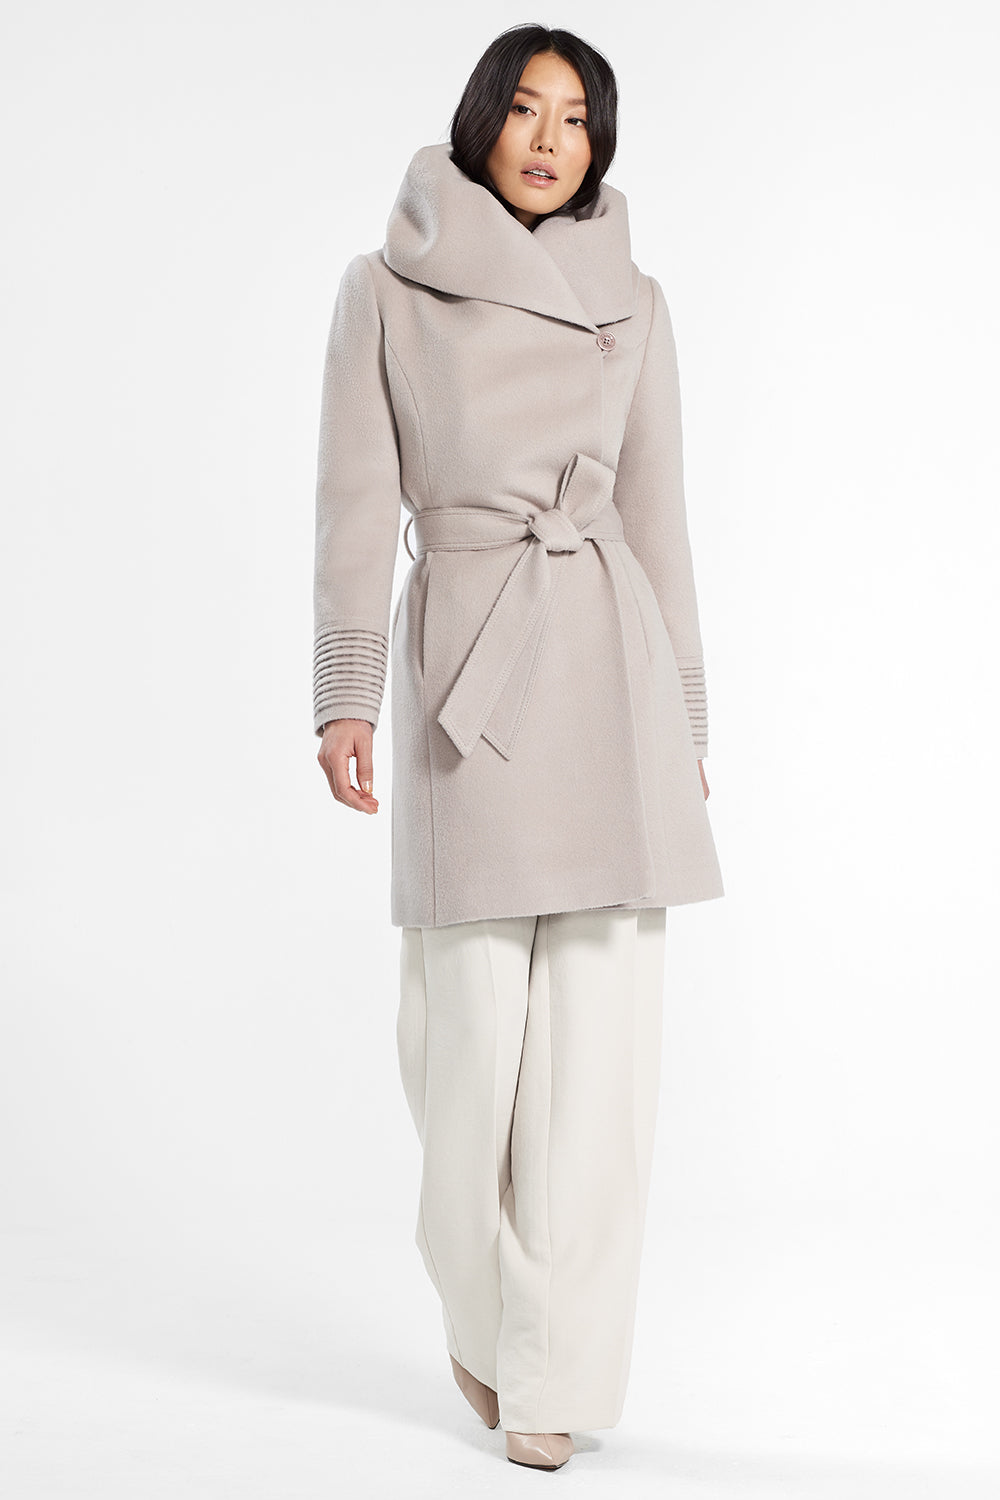 Sentaler Mid Length Hooded Wrap Coat featured in Baby Alpaca and available in Bleeker Beige. Seen from front.